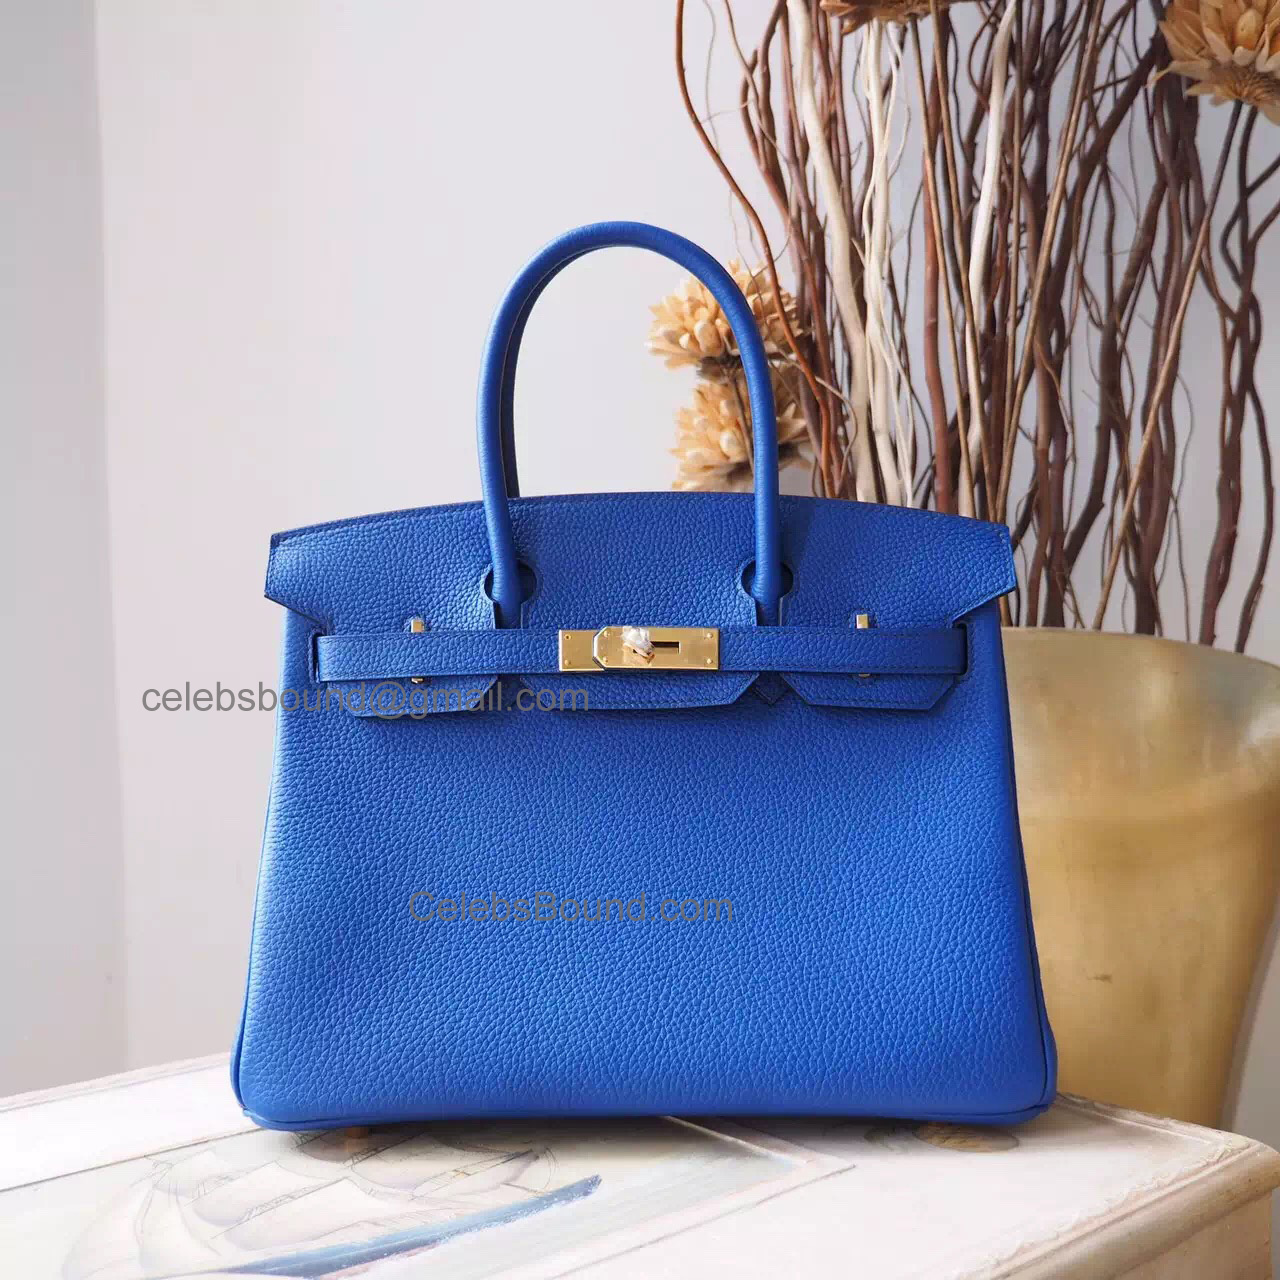 Hand Stitched Hermes Birkin 30 Bag in 7t Blue Electric Togo Calfskin GHW